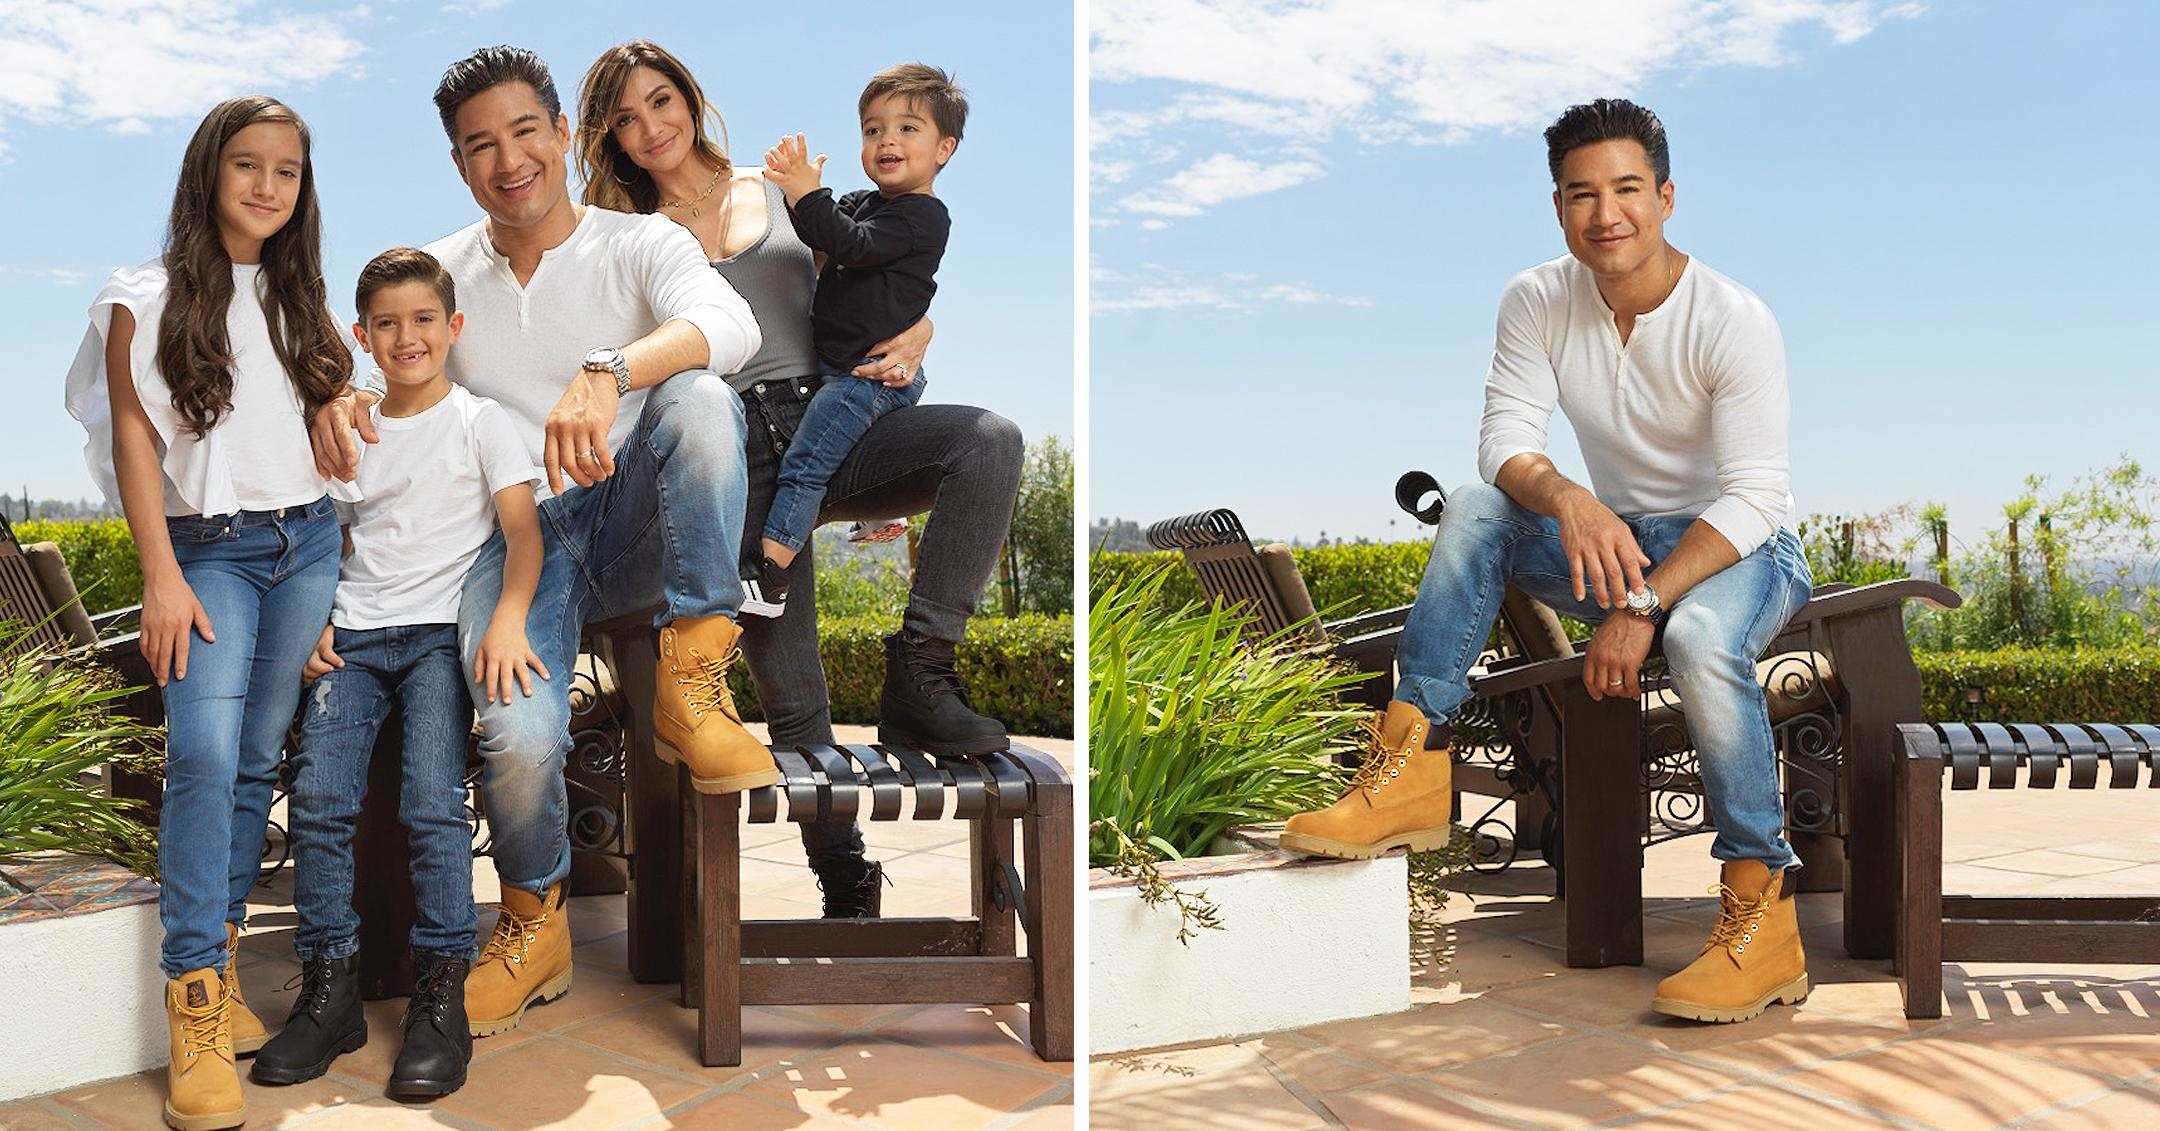 mario lopez and family kicks off back to school with dsw to build confidence through style